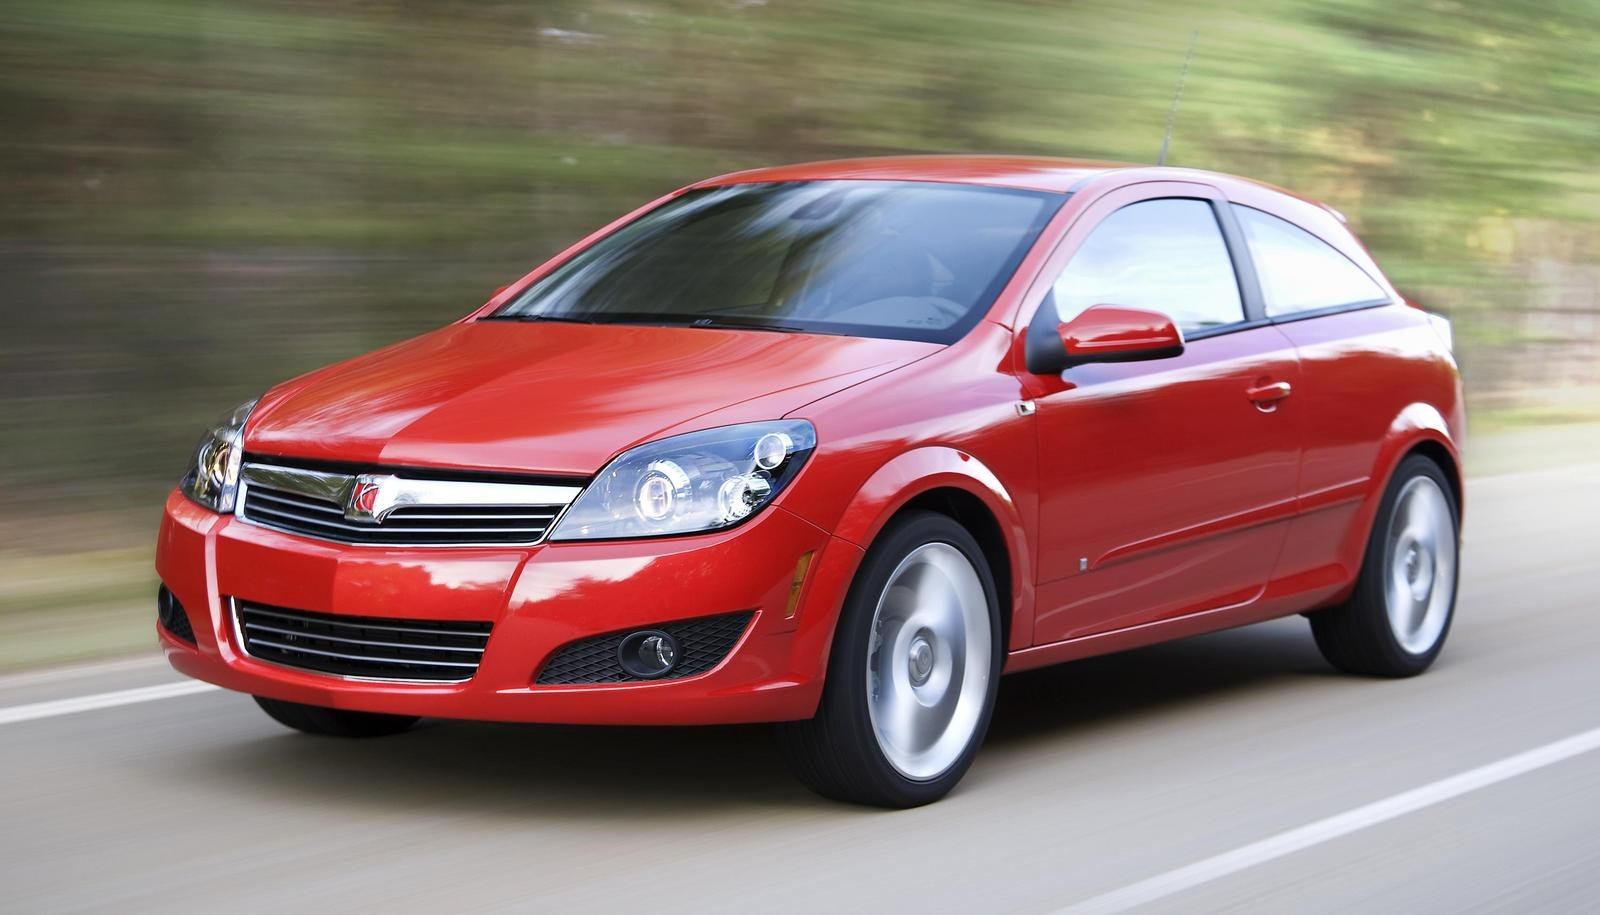 2009 Saturn Astra Review Top Speed